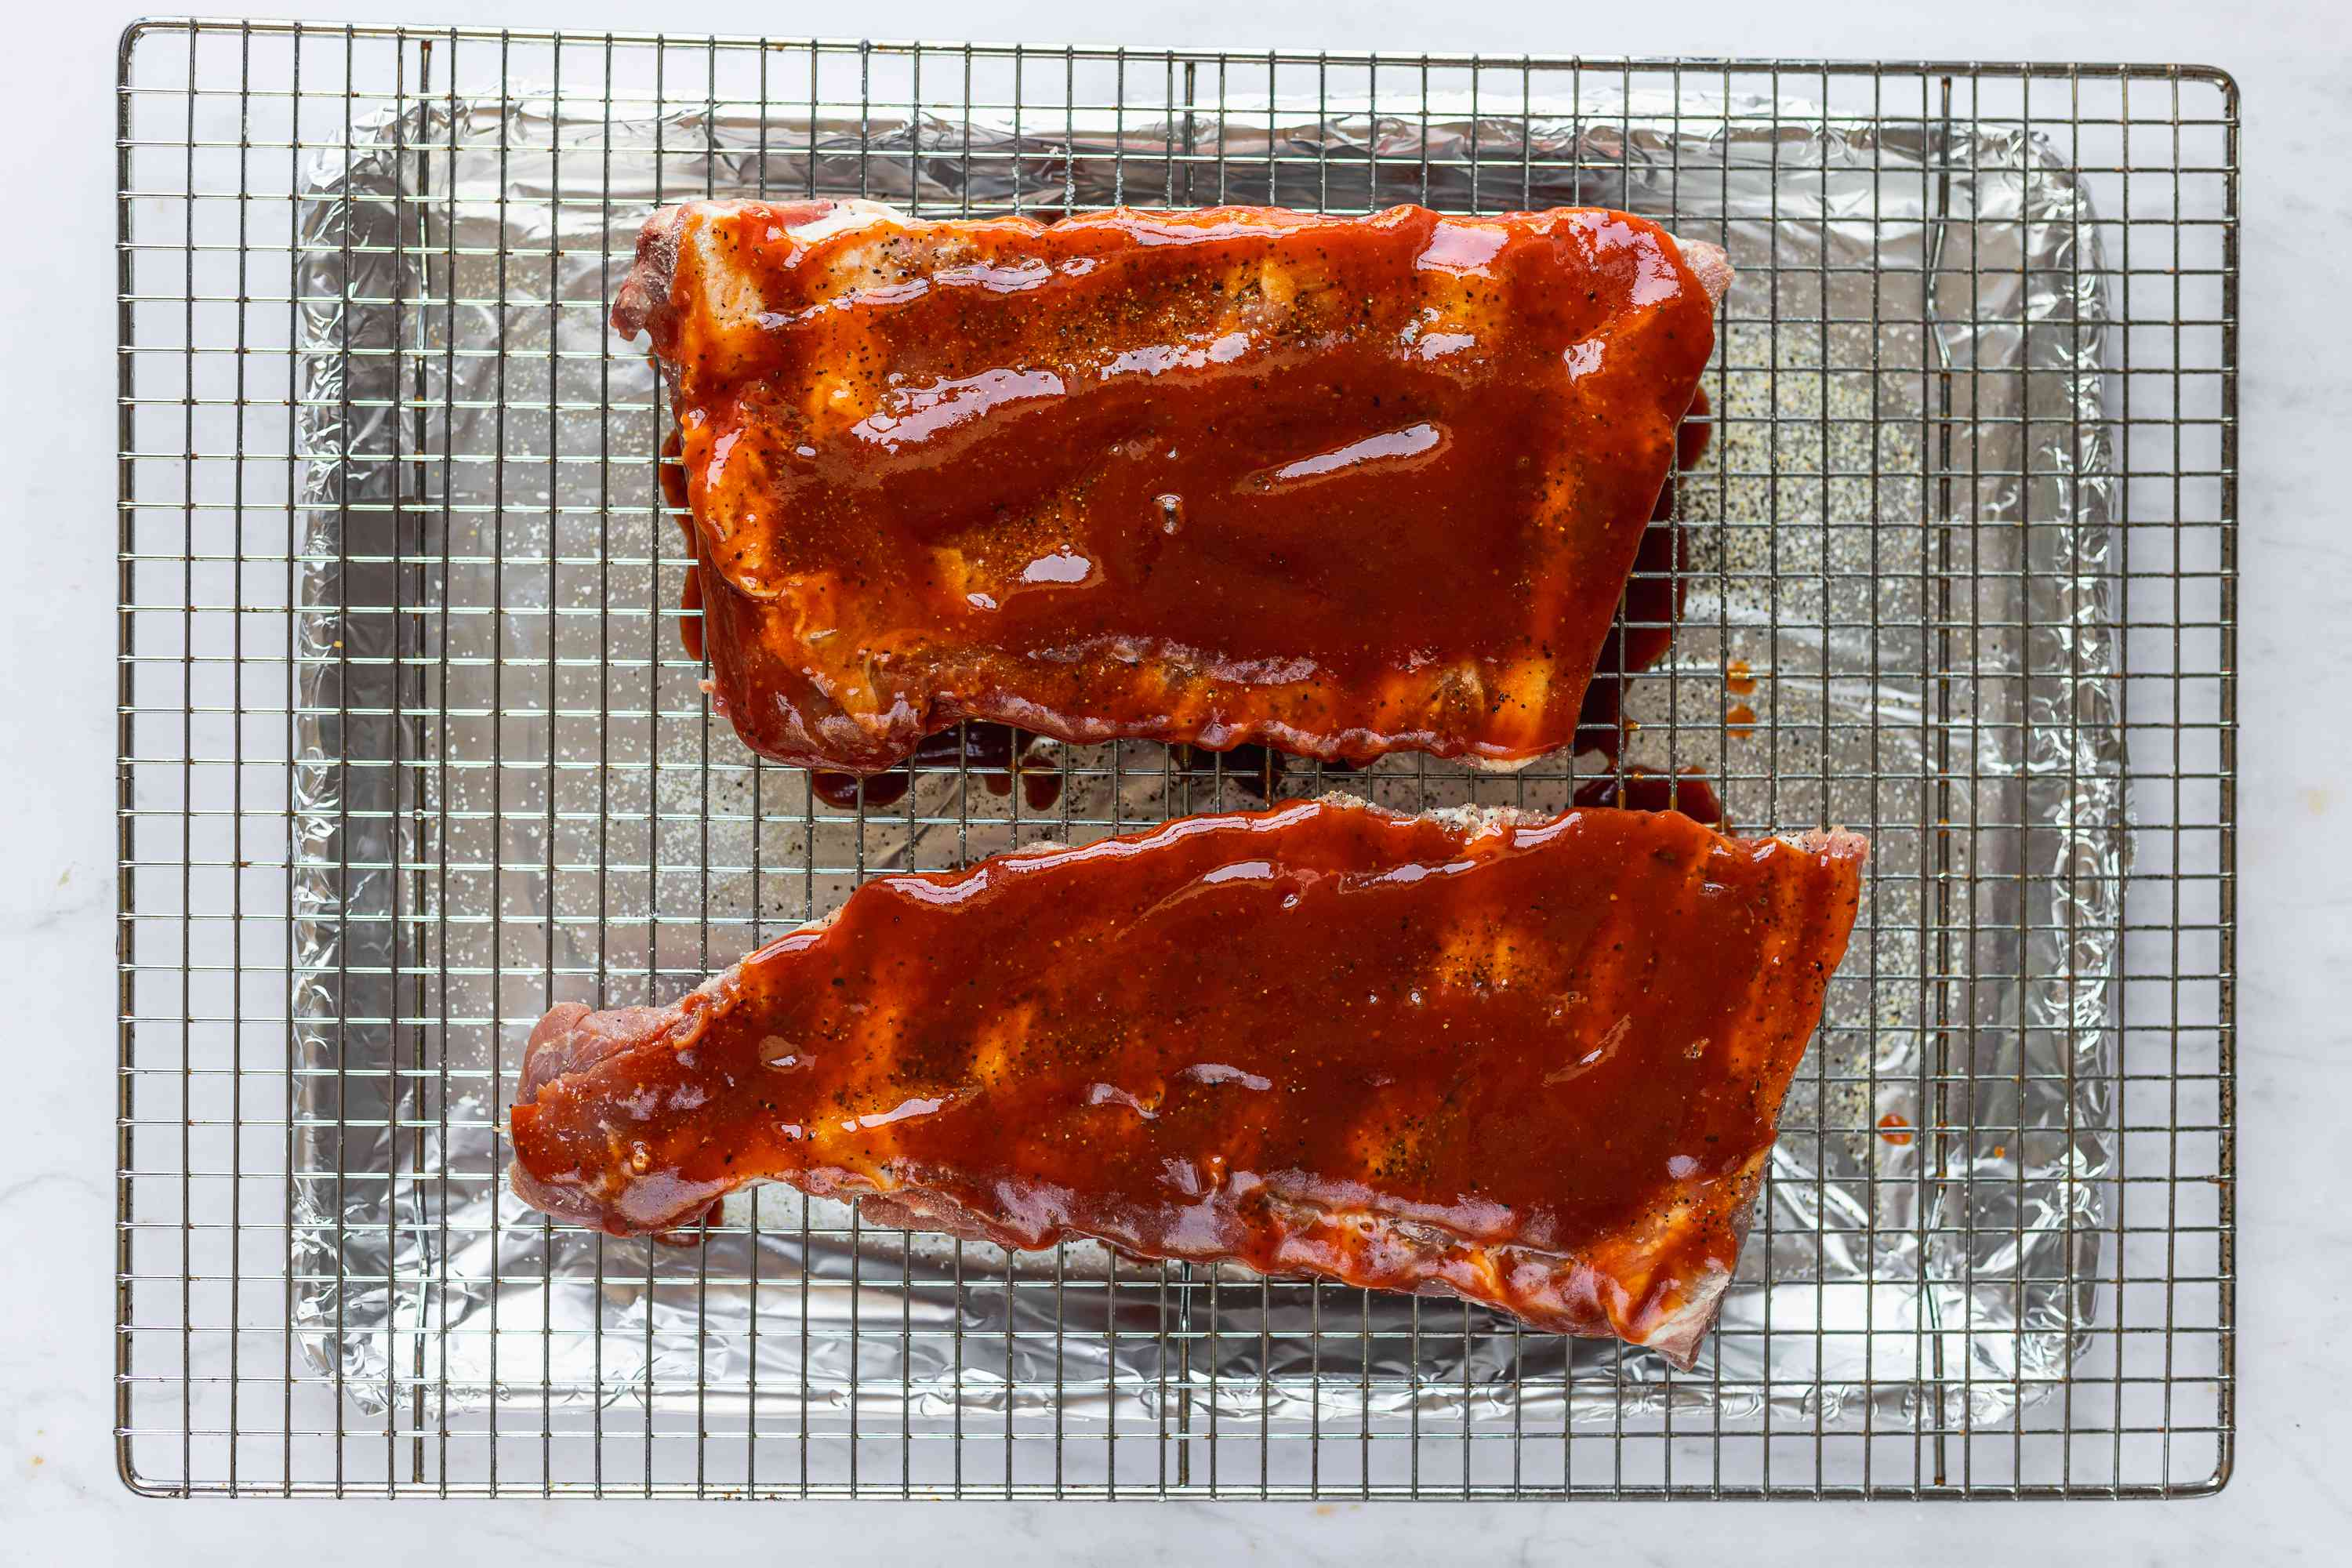 Barbecue sauced on top of the spareribs in a baking pan